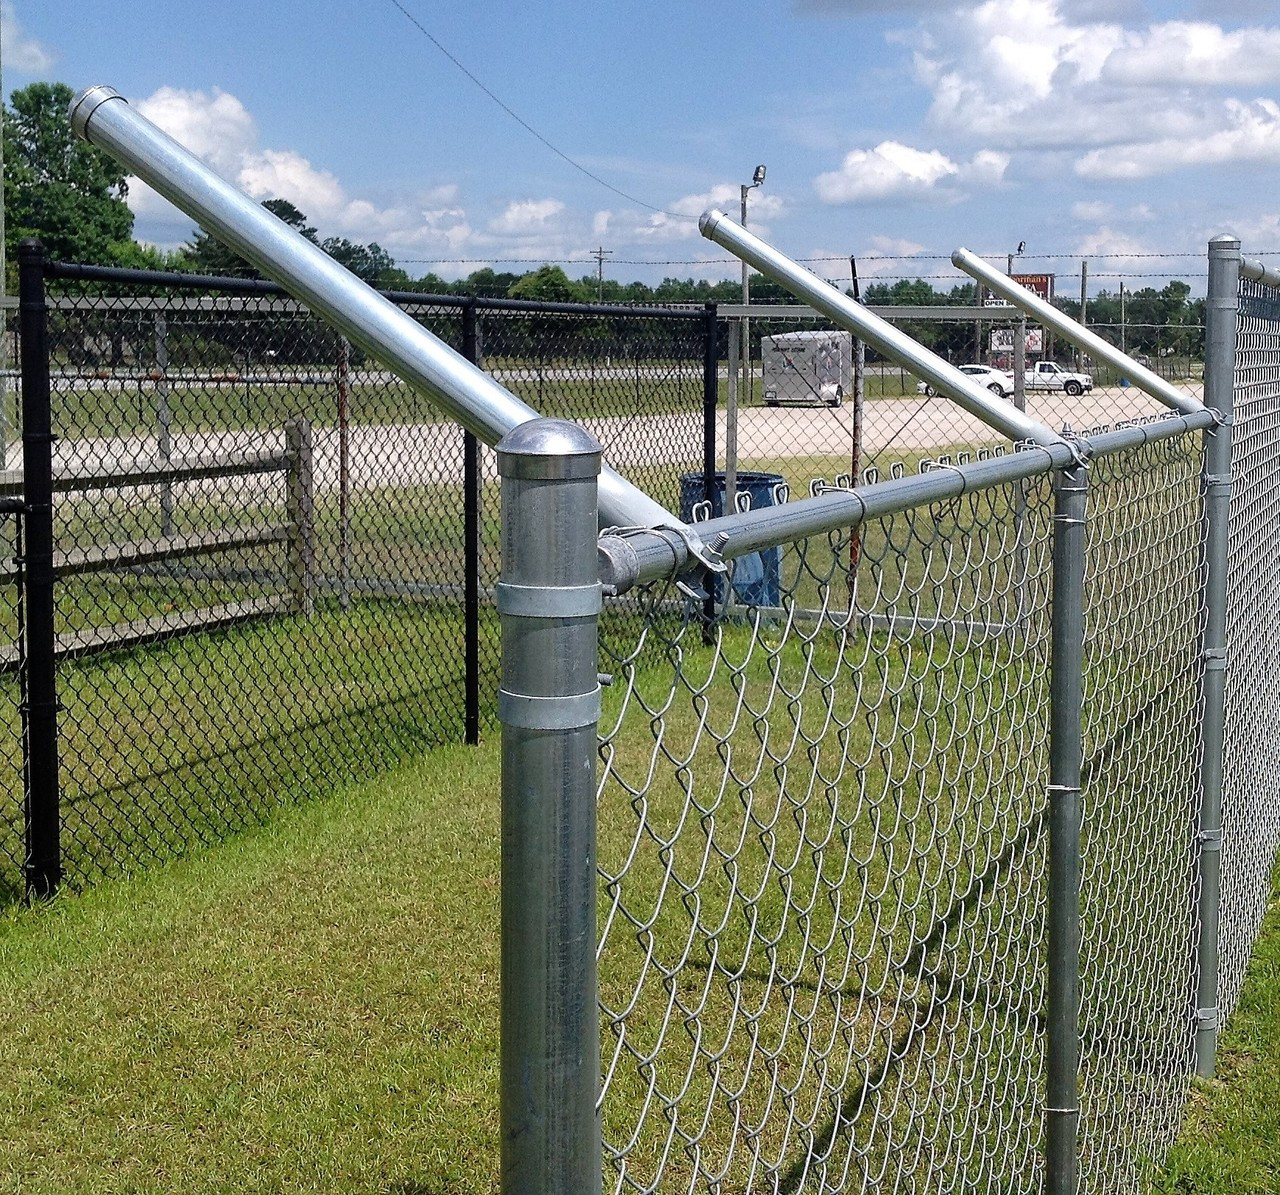 extend a post extensions for chain link fence set of 9 the rh thefencedepartment com chain link fencing cost chain link fencing near me